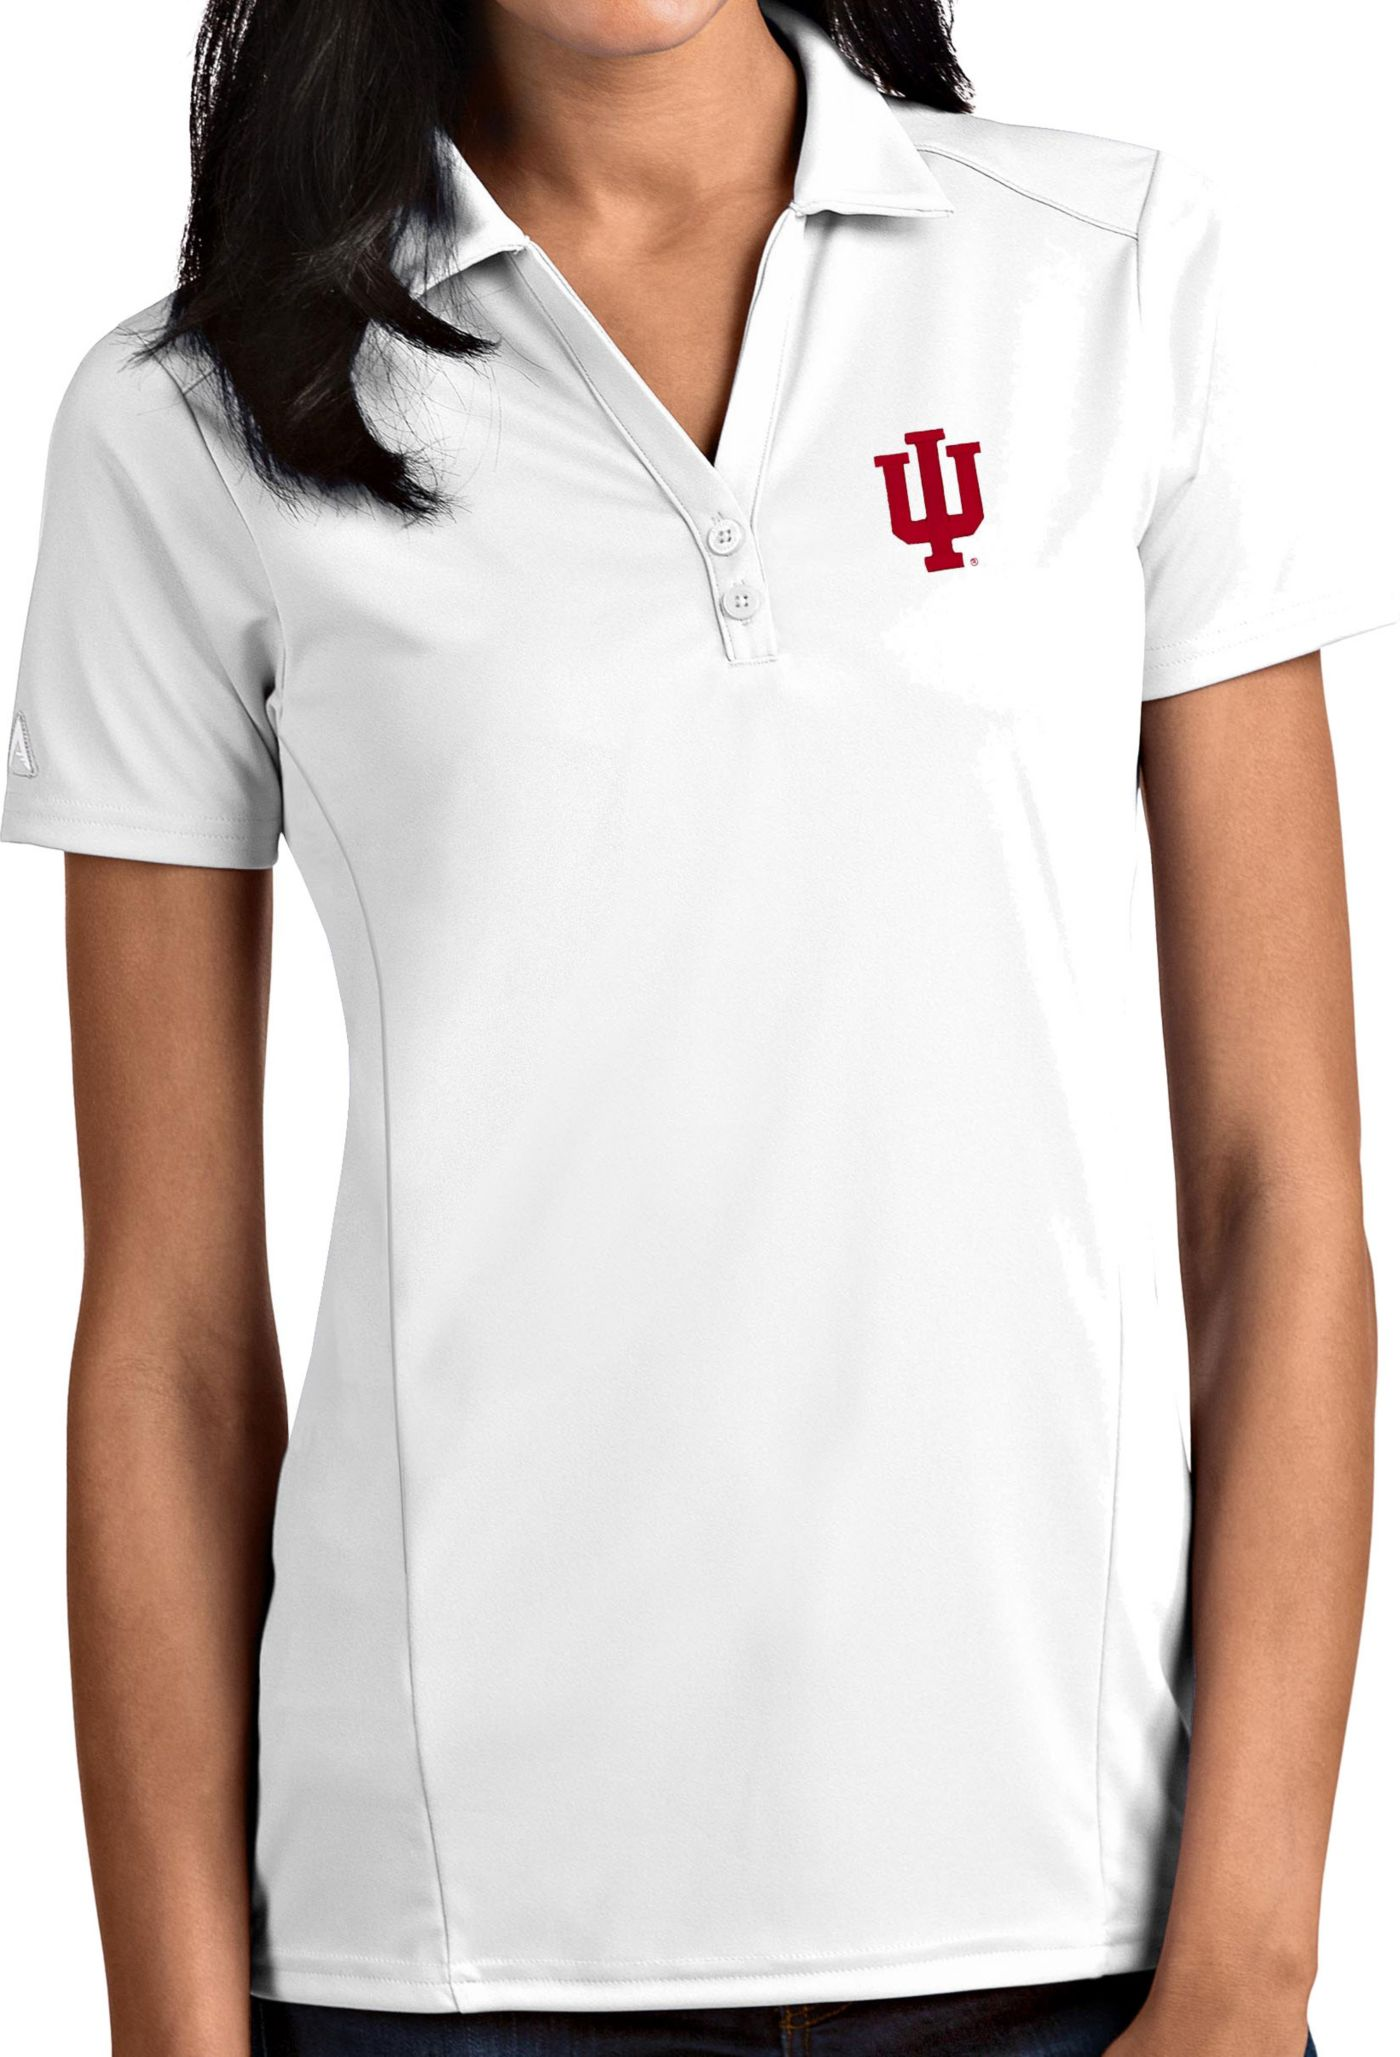 Antigua Women's Indiana Hoosiers Tribute Performance White Polo